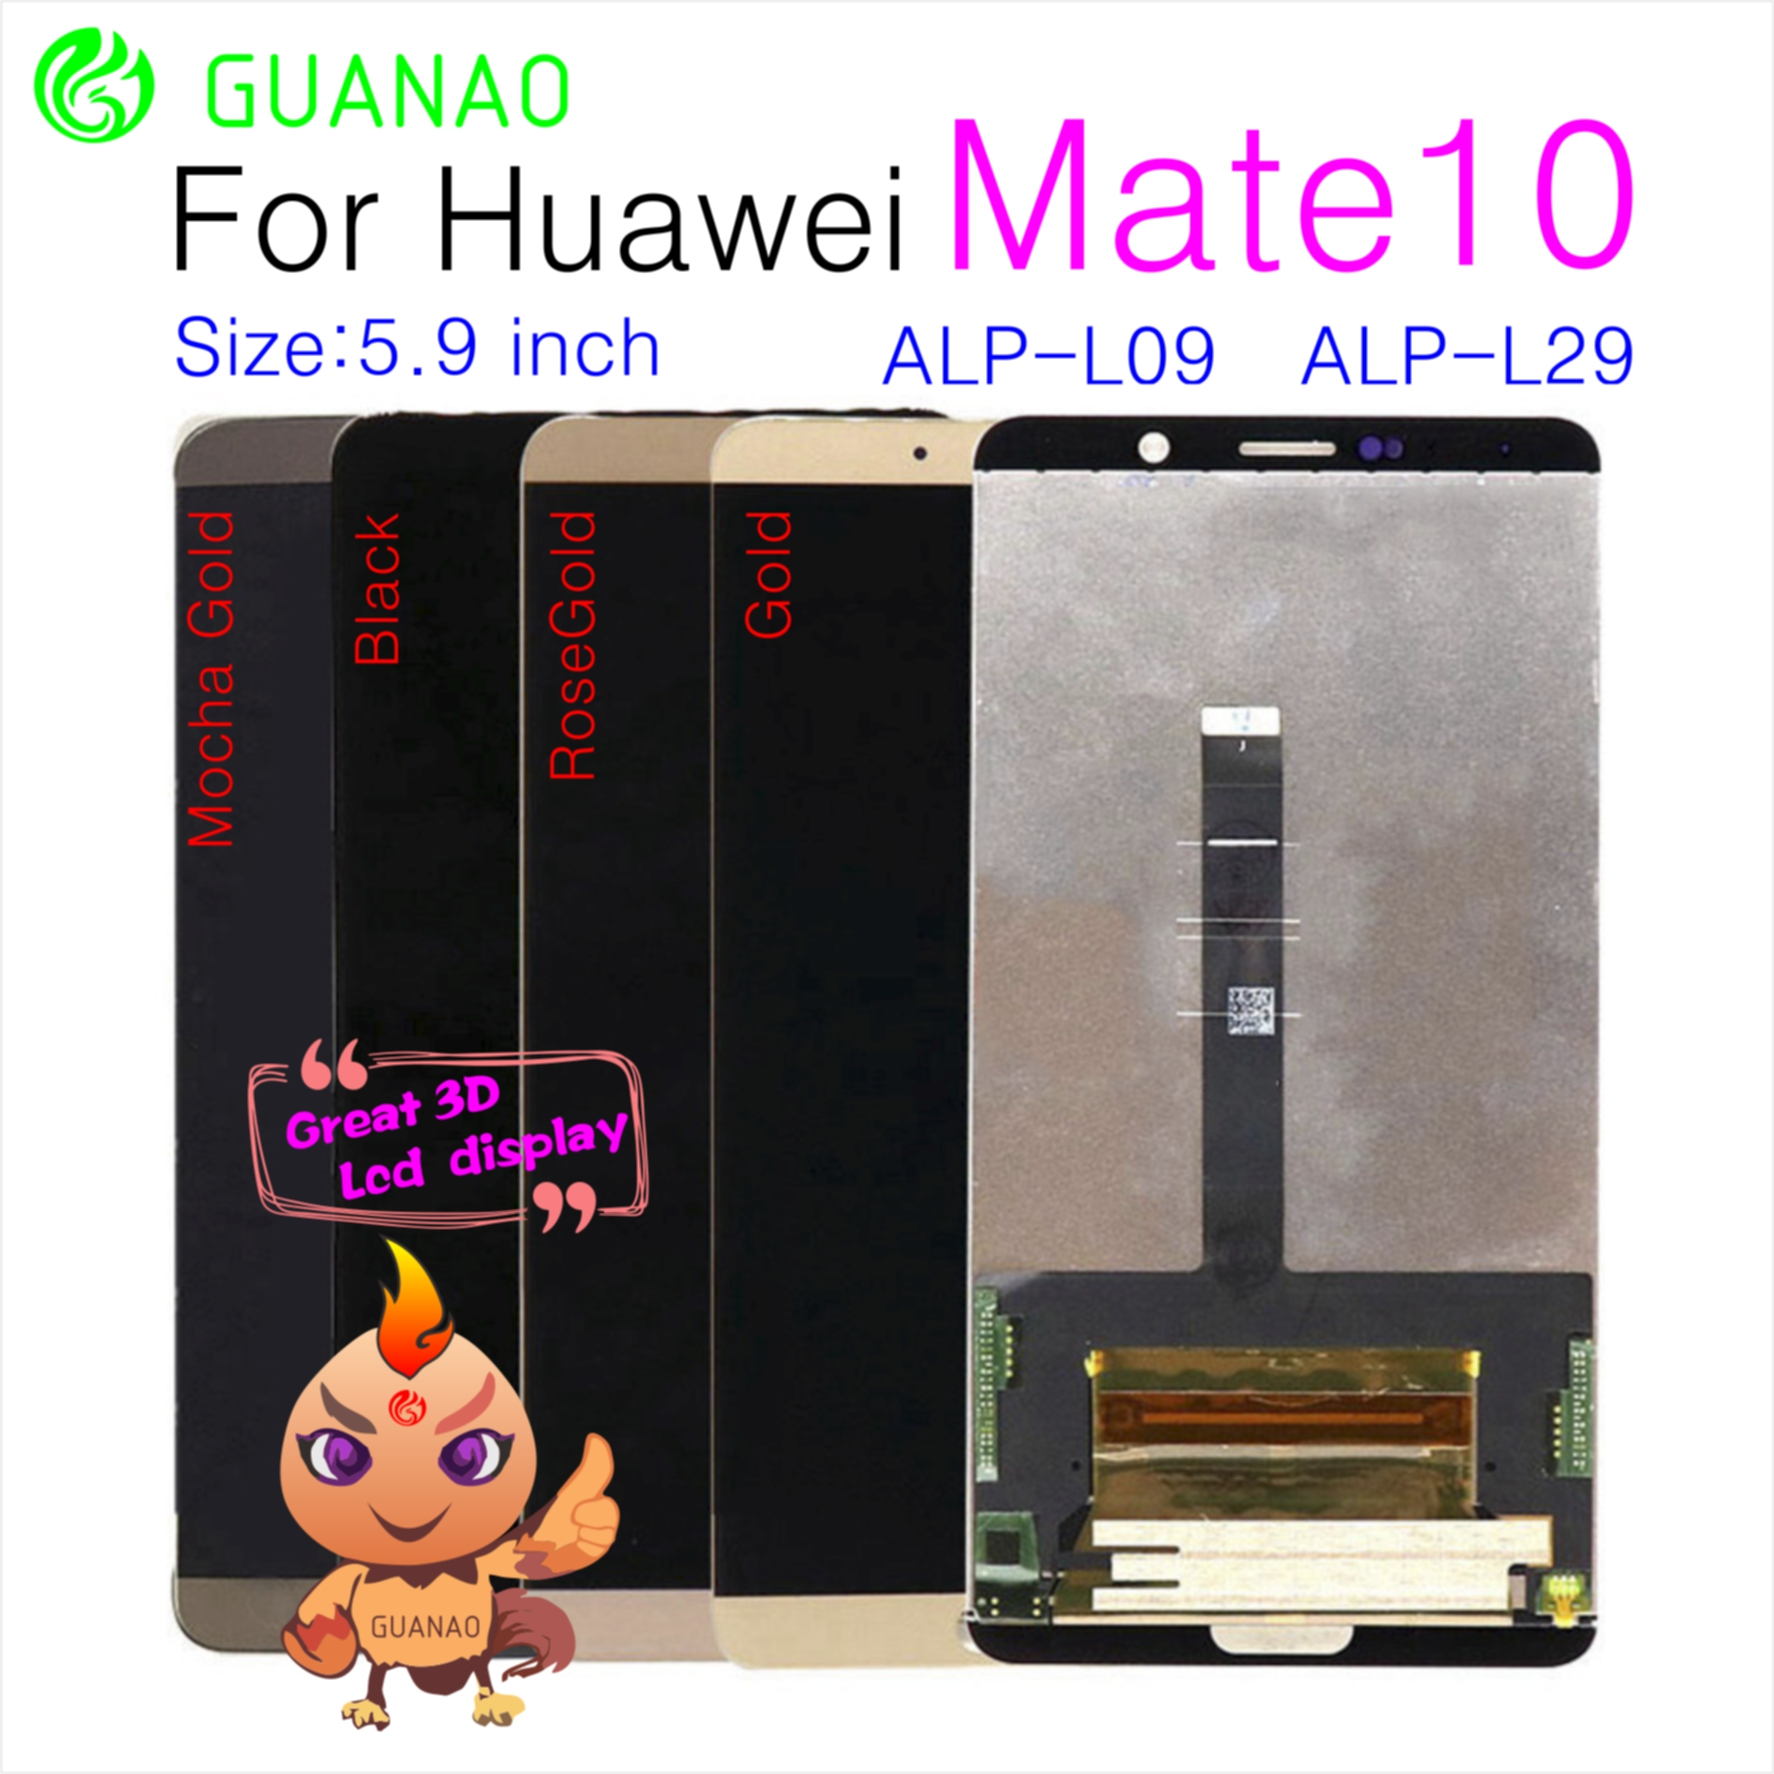 For Huawei Mate 10 LCD Display Touch Screen Digitizer Assembly For Huawei Mate 10 LCD Mate10 ALP L09 L29 Screen ReplacementFor Huawei Mate 10 LCD Display Touch Screen Digitizer Assembly For Huawei Mate 10 LCD Mate10 ALP L09 L29 Screen Replacement